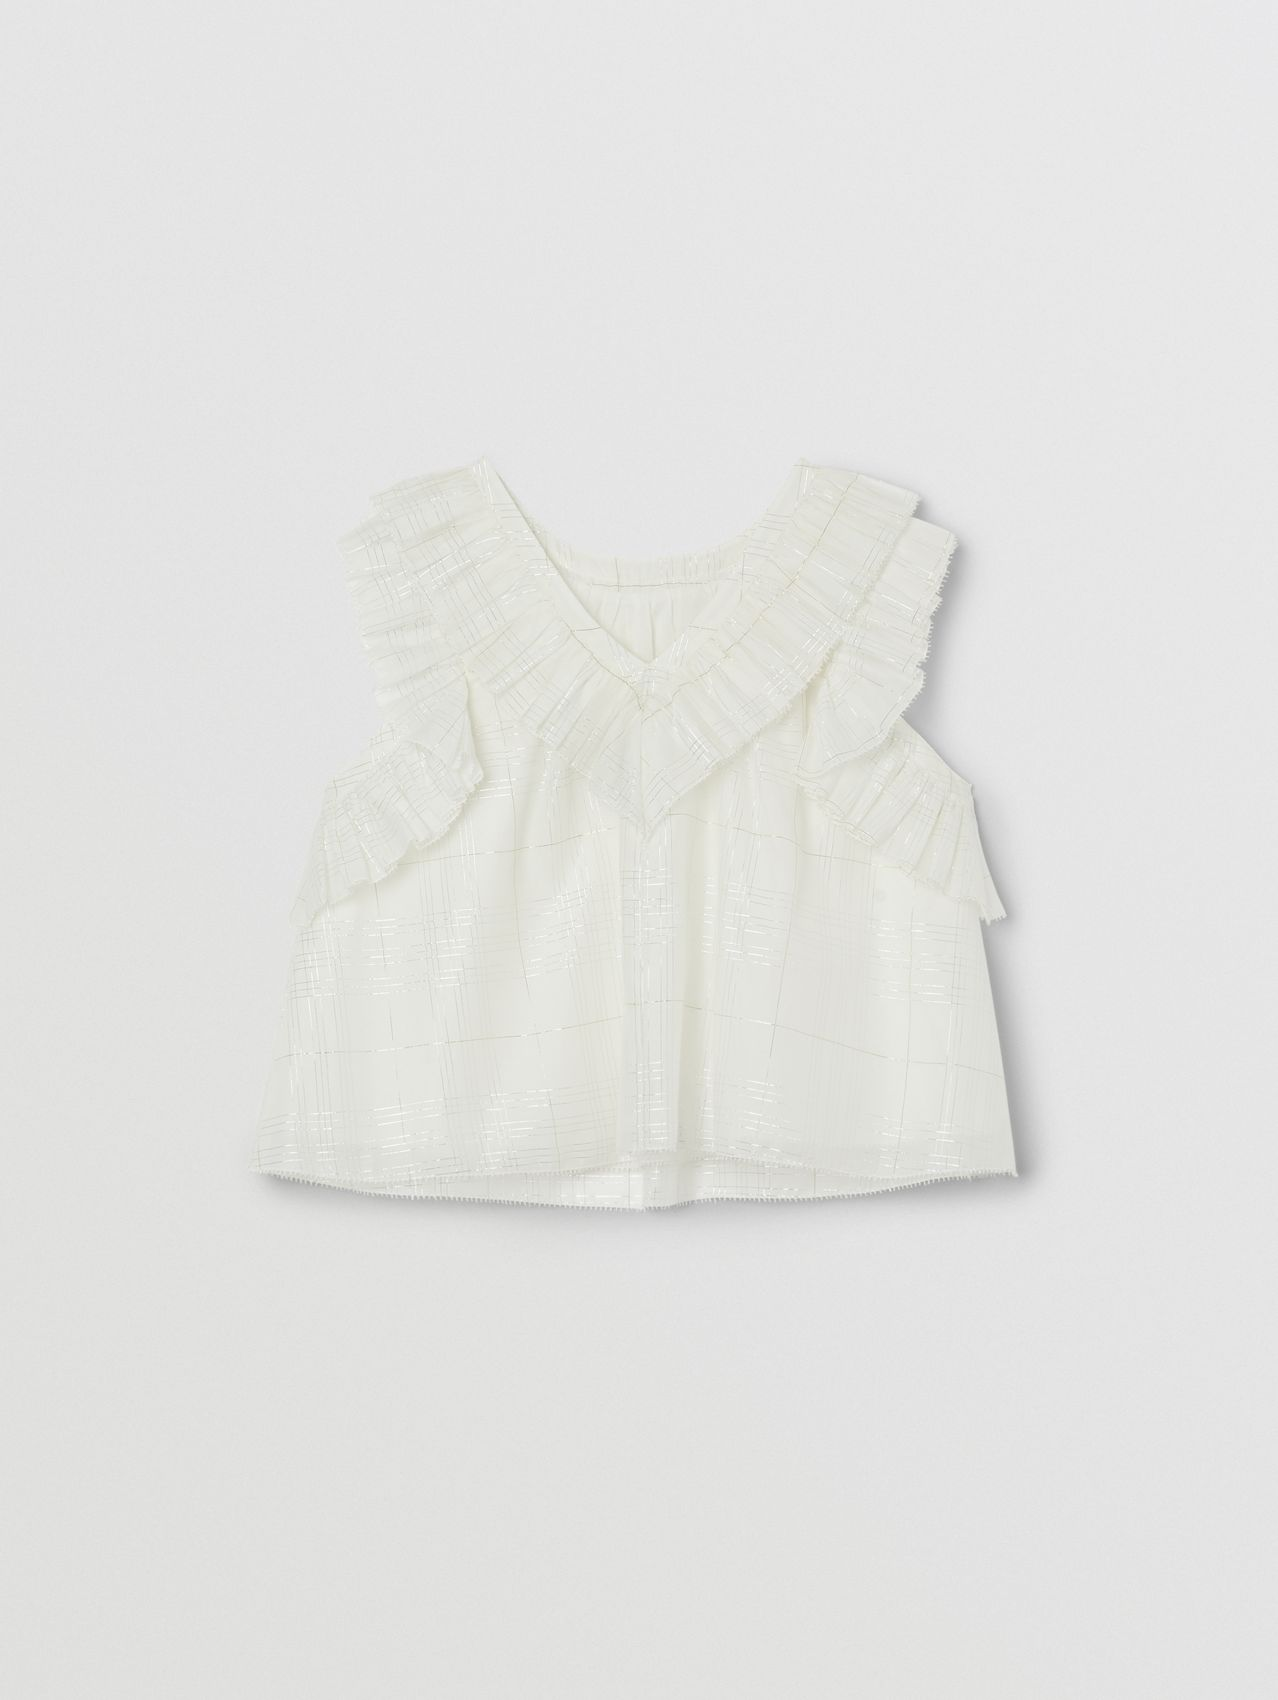 Ruffled Cotton Silk Sleeveless Top in White